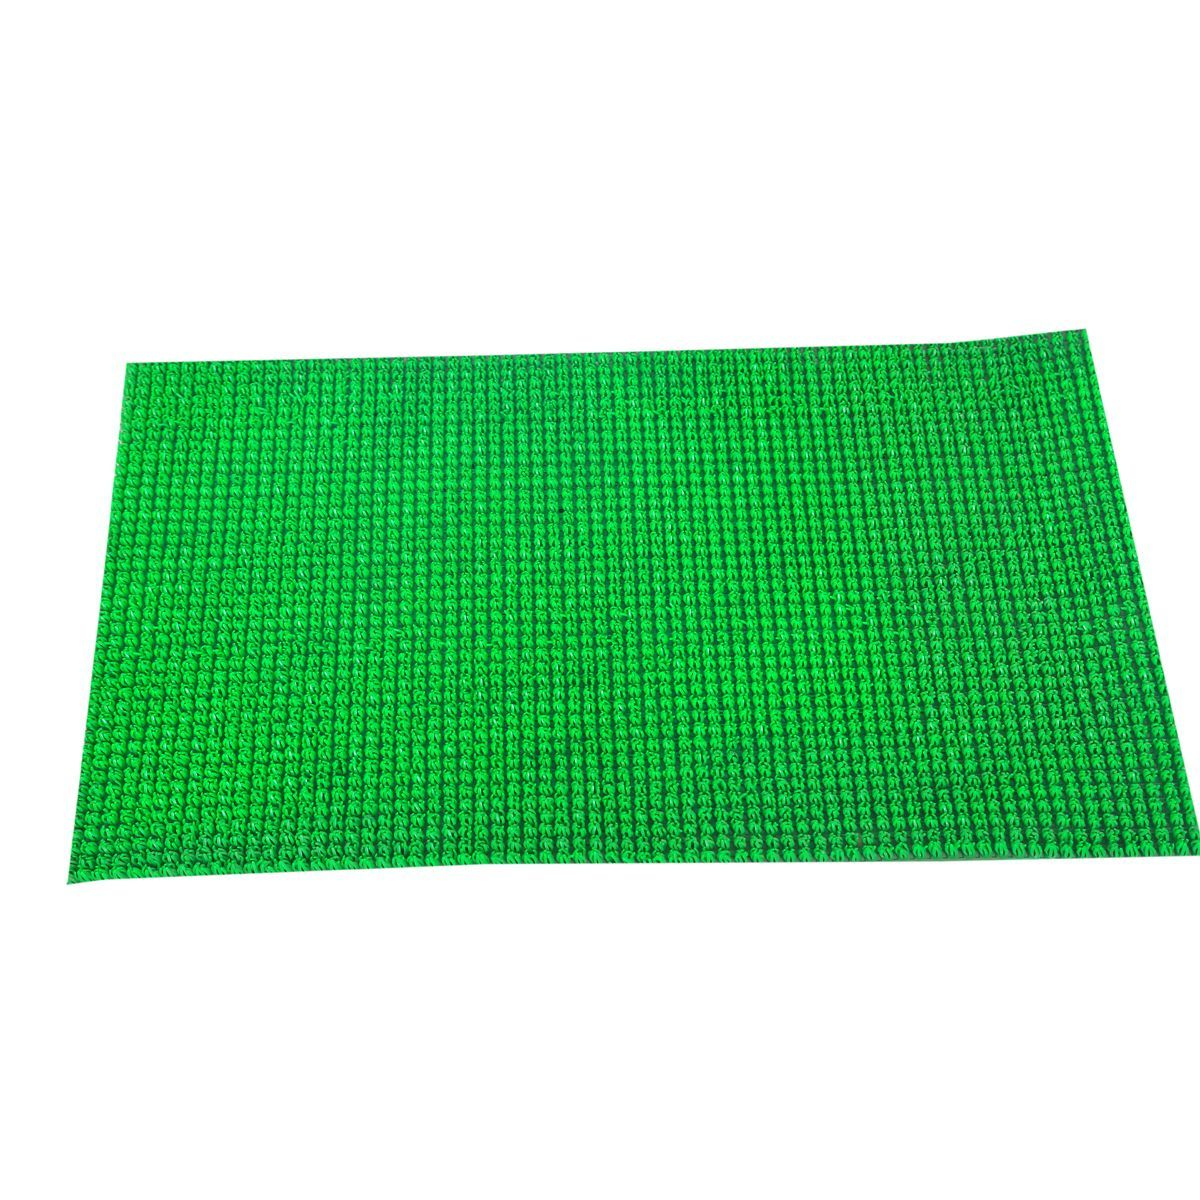 Kuber Industries™ Dirt Rubb Off Clean Footwear PVC Thick Doormat for Offices,Hotel ,Restaurtaurant, Home,Shop Color- Green Size : 60 cm x 38 cm x 1.5 cm